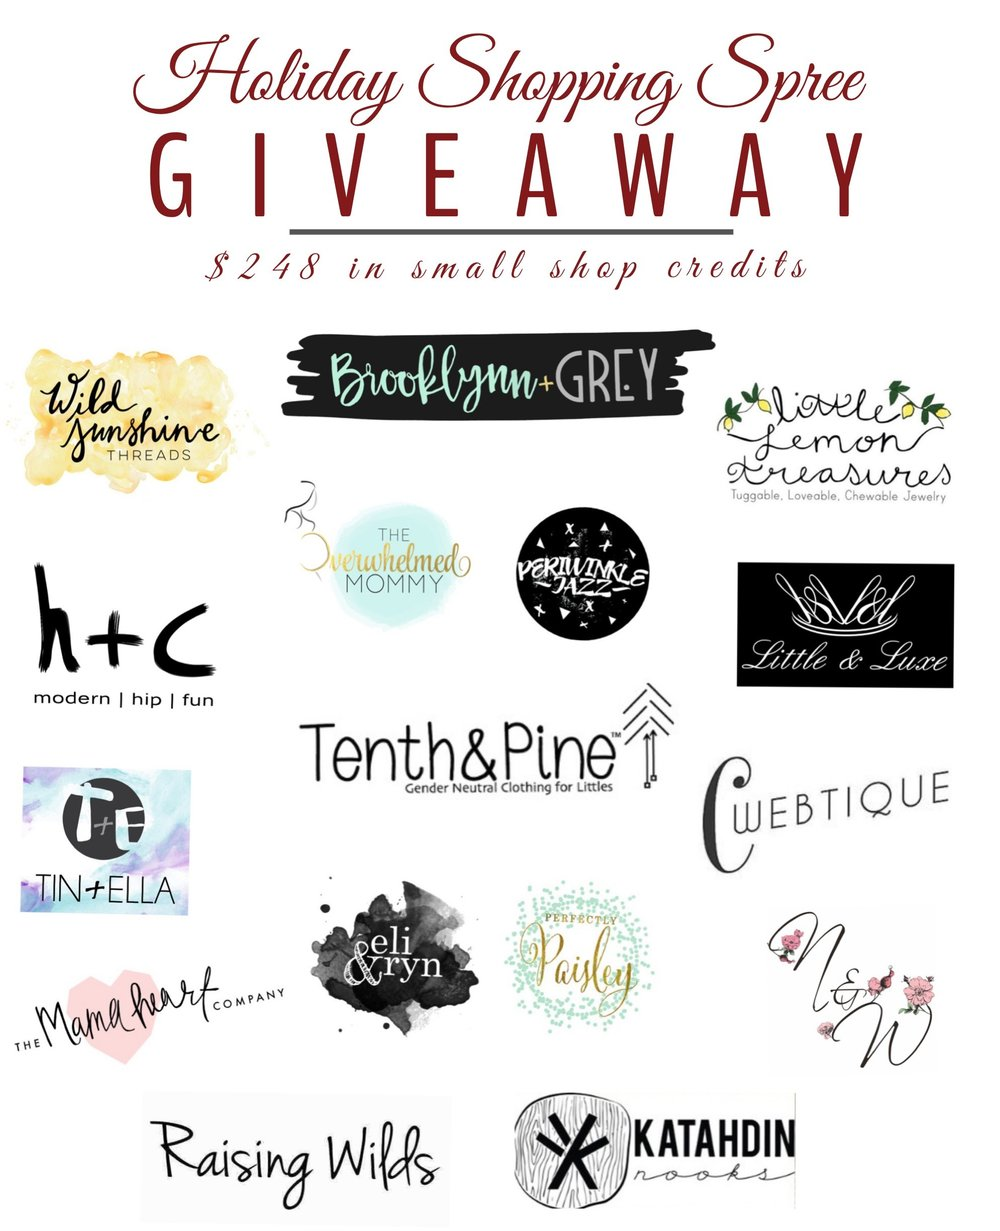 Small Shop Holiday Shopping Spree GIVEAWAY